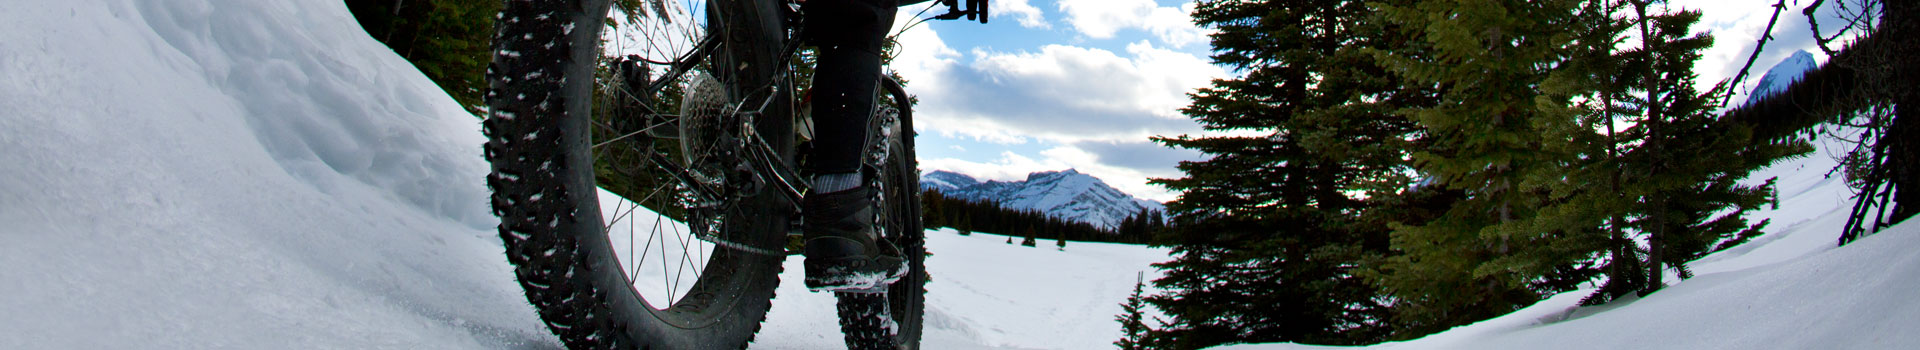 fatbiking-grand-tetons-jackson-hole-turpin-meadow